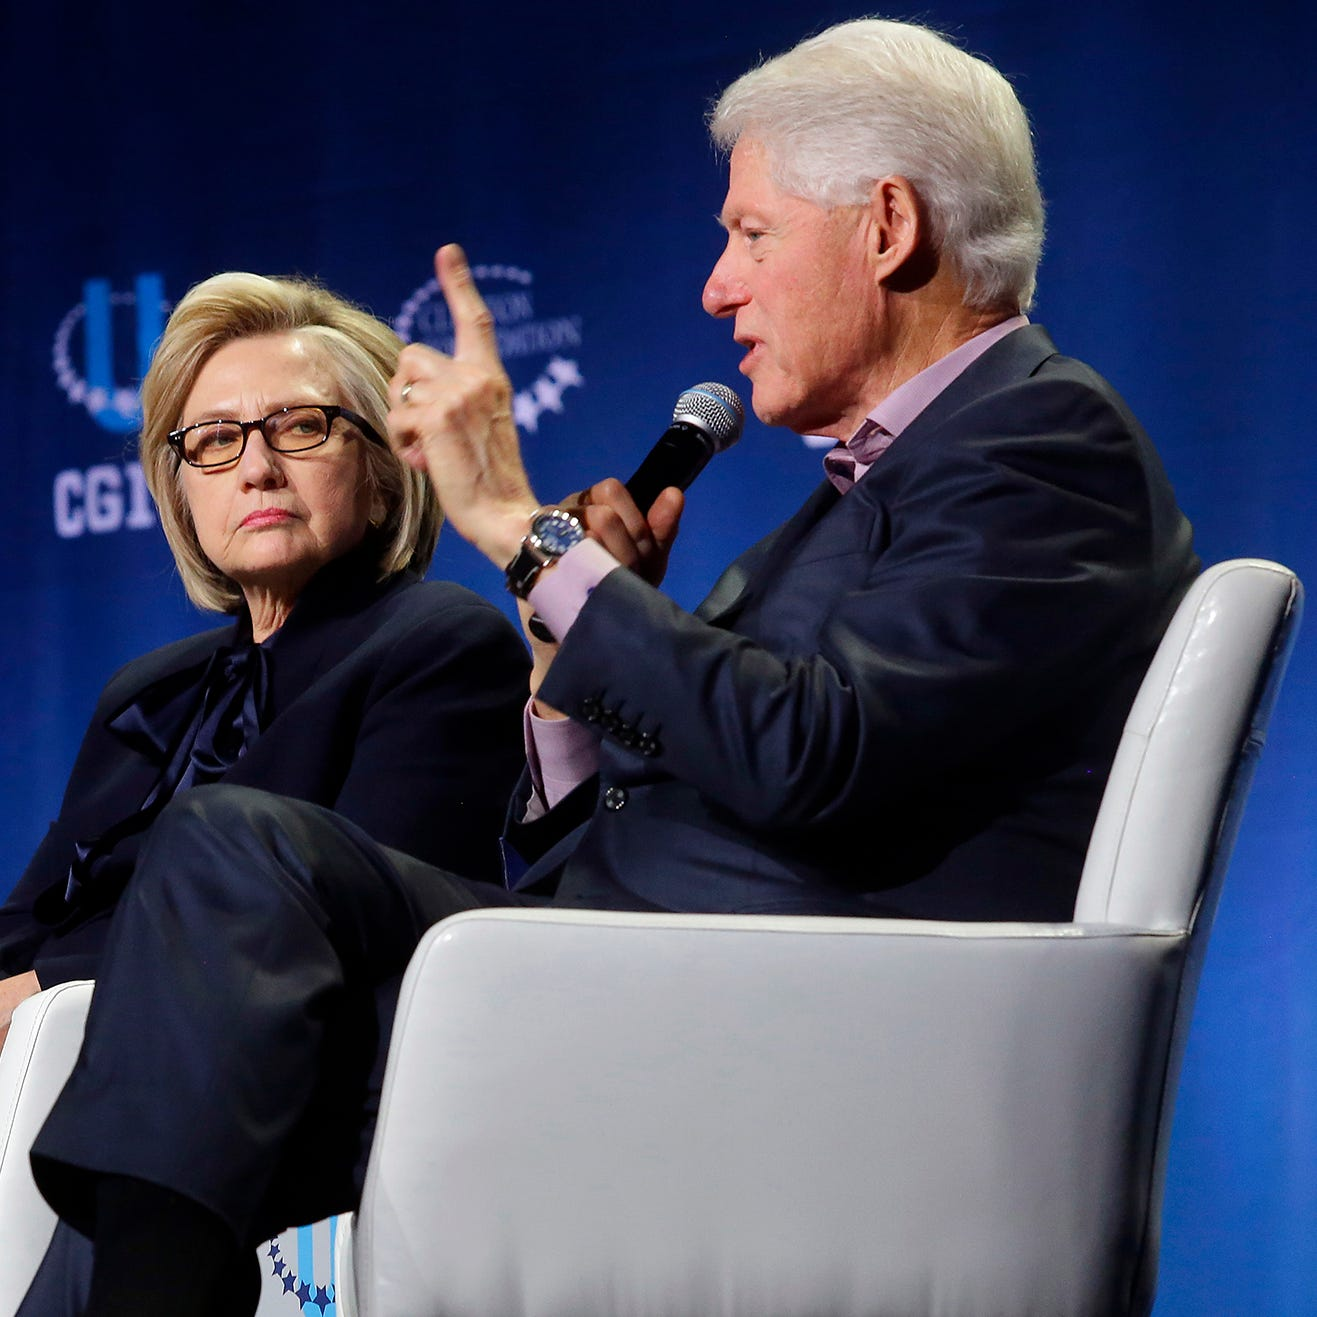 Clintons may have to be pushed off the stage: Golden